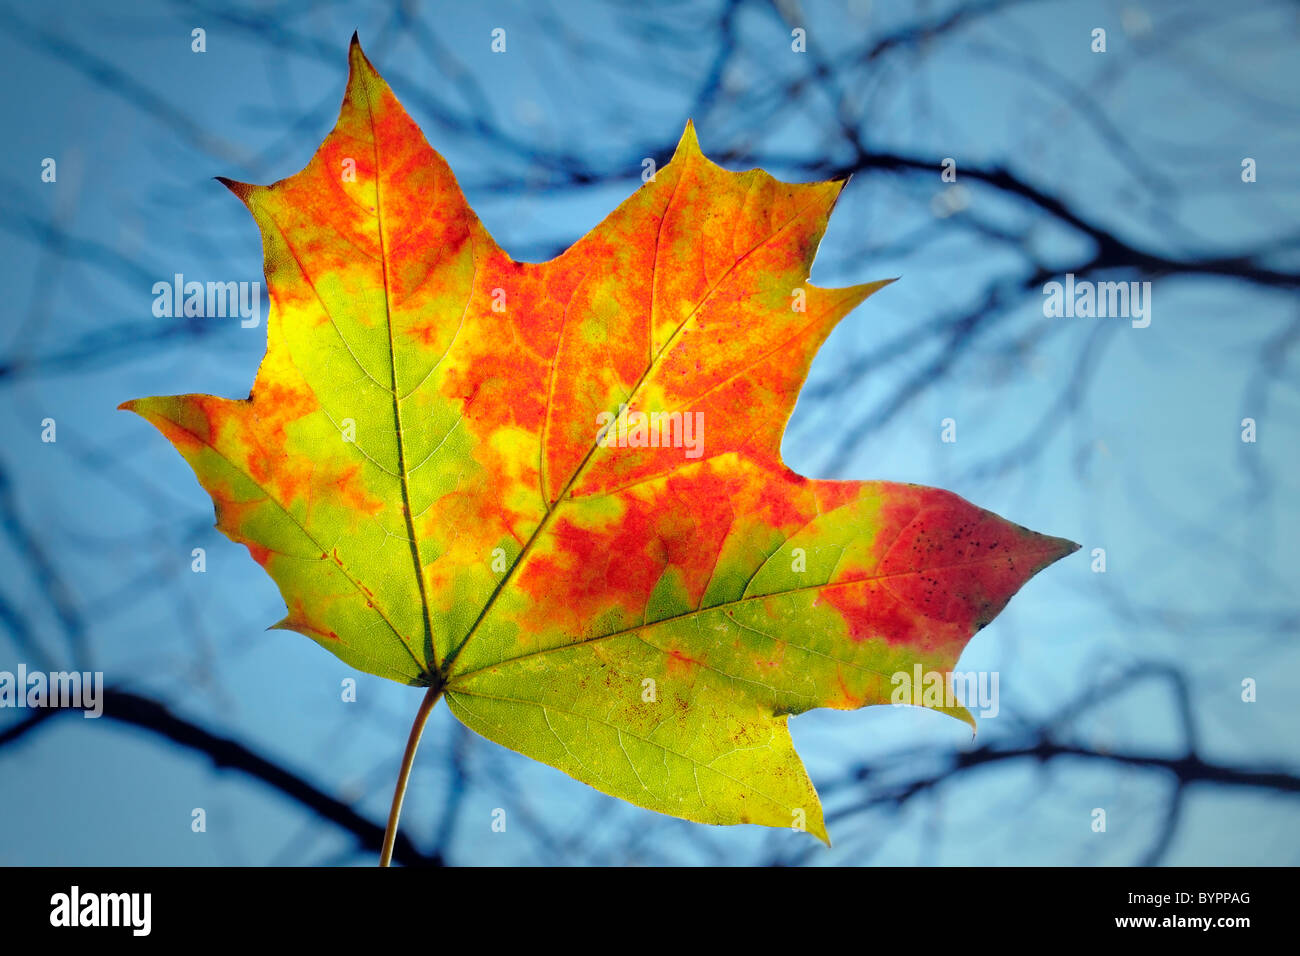 lonely leaf - Stock Image